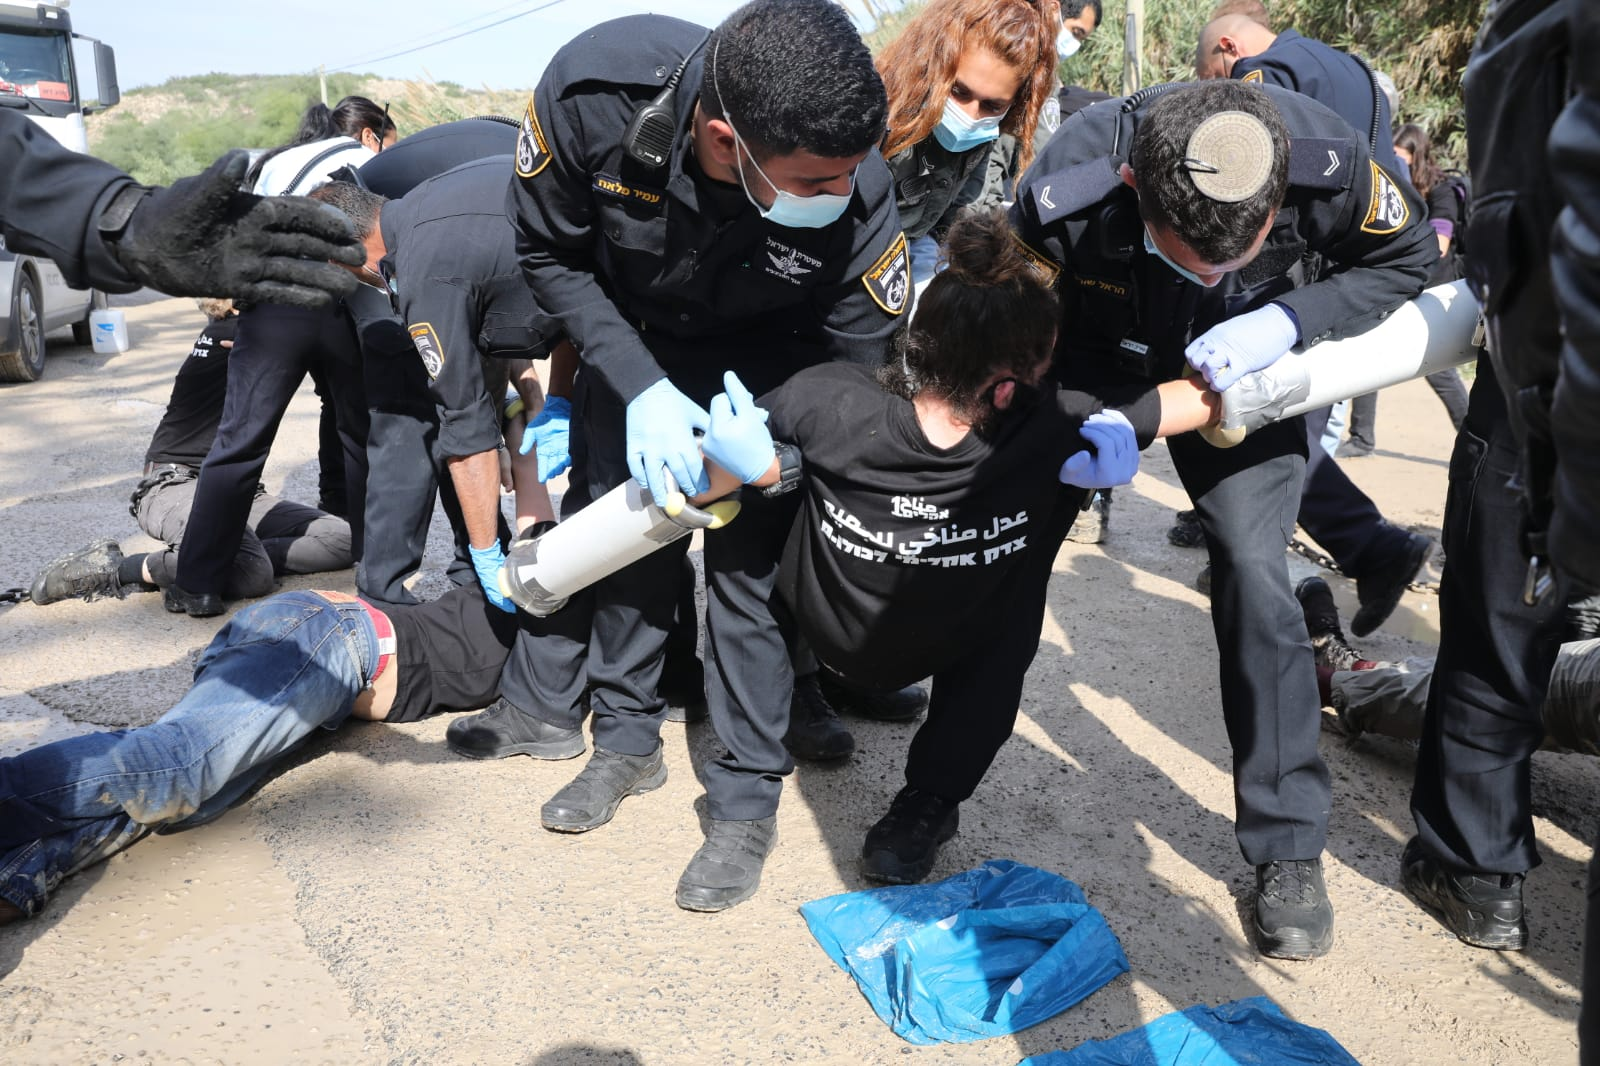 Israeli police arrest climate activists outside the HeidelbergCement quarry in the occupied West Bank during a protest against government plan to expand the quarry and build an industrial zone nearby, November 22, 2020. (Oren Ziv)